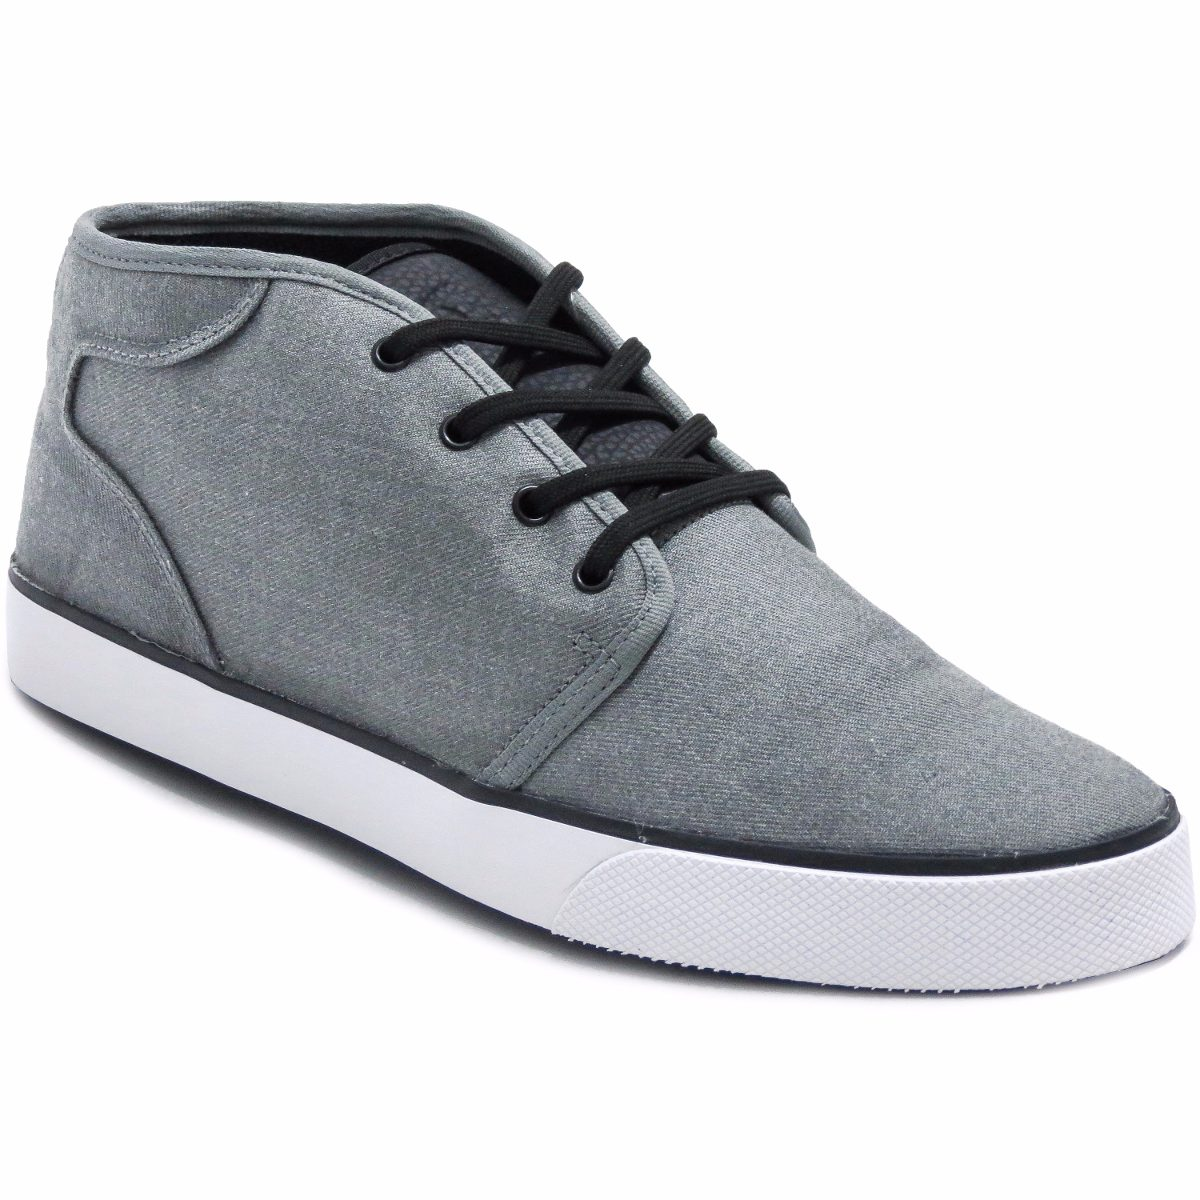 Zapatillas - DC Shoes Zapatillas Dc Studio Mid Skate Urbanas